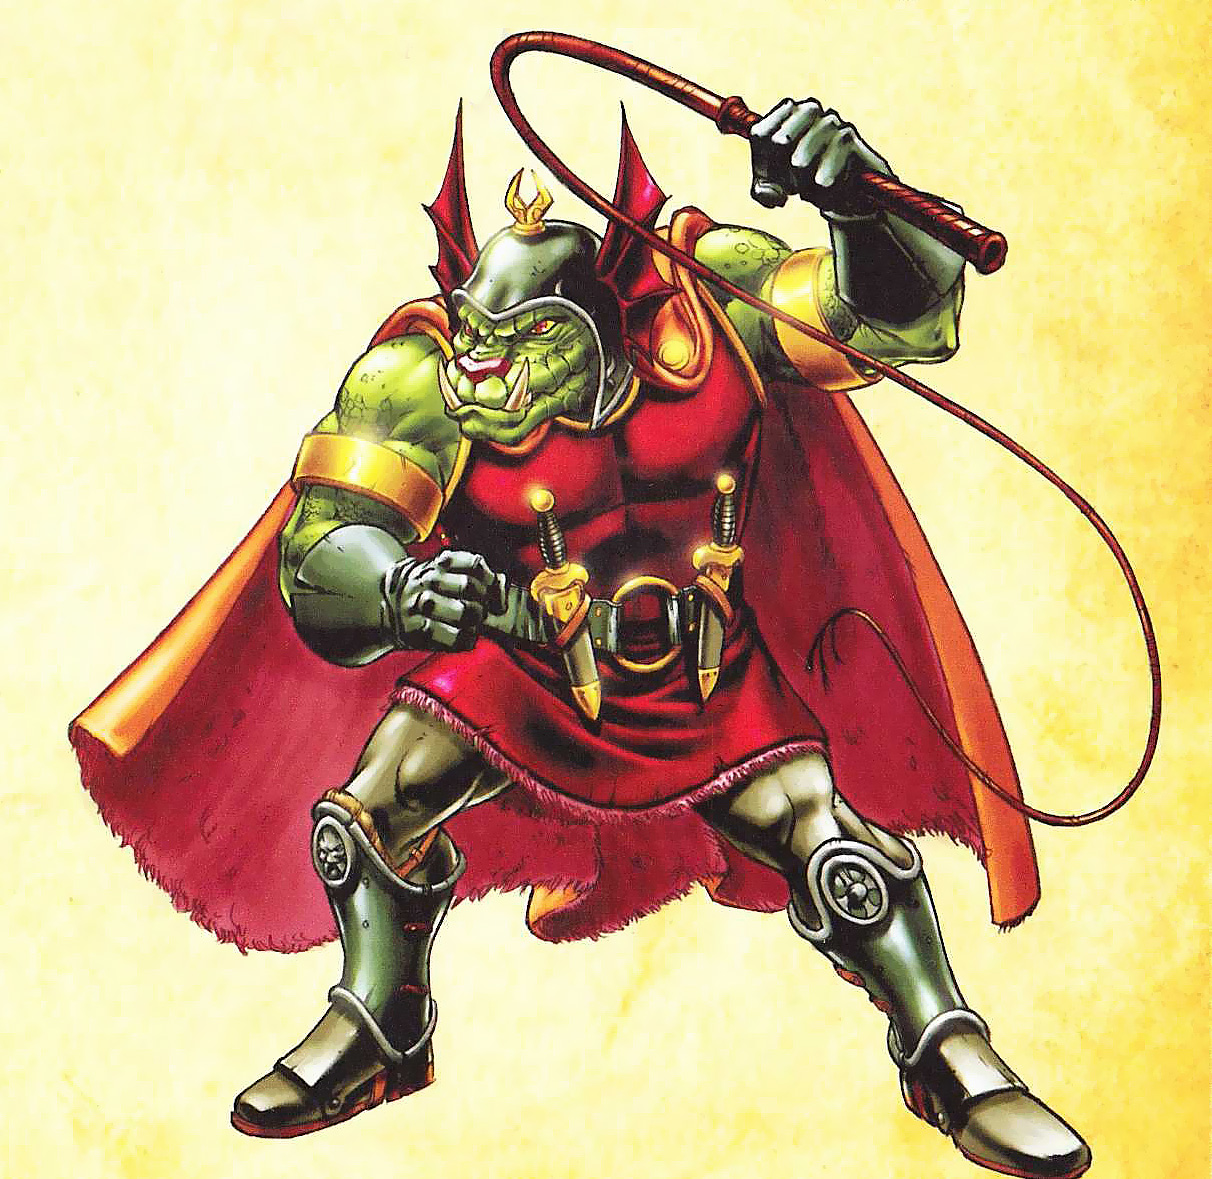 orc Orco (o orca, come lo chiamavano nella serie) - by Emiliano Santalucia Dungeons & Dragons Animated Series Handbook (2007) © Wizards of the Coast & Hasbro